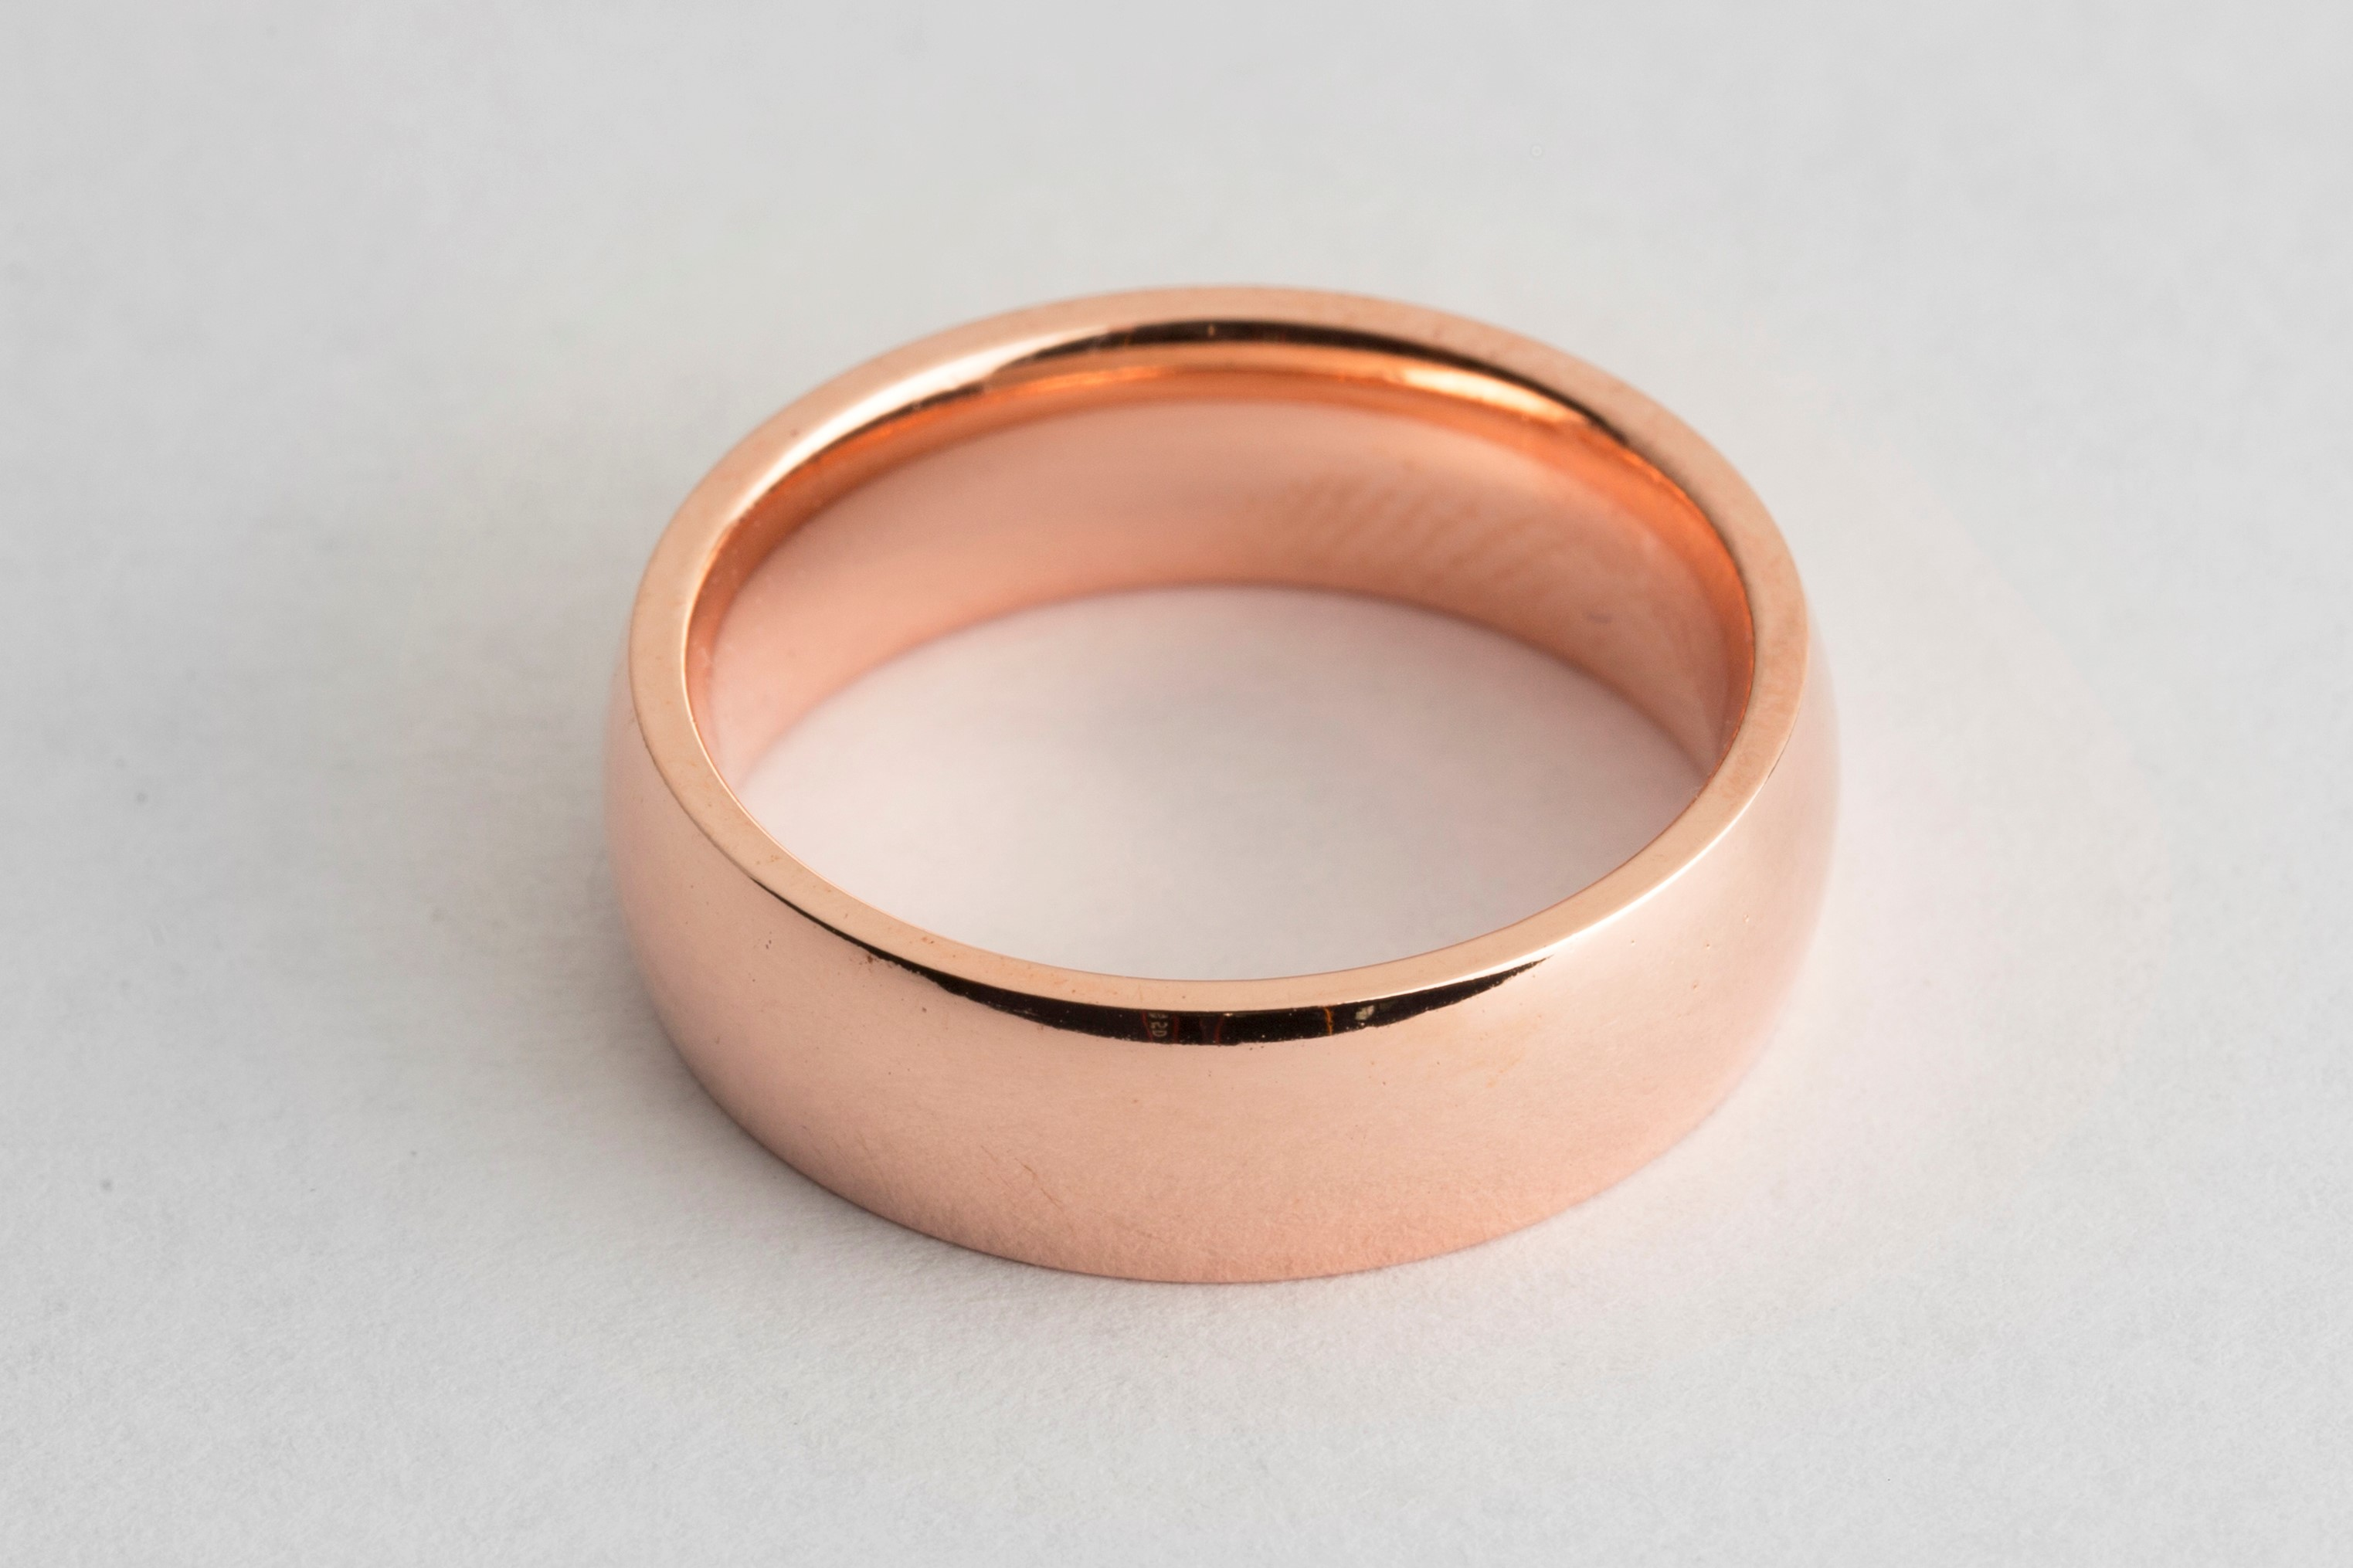 Wedding ring electroplated in rose gold solution